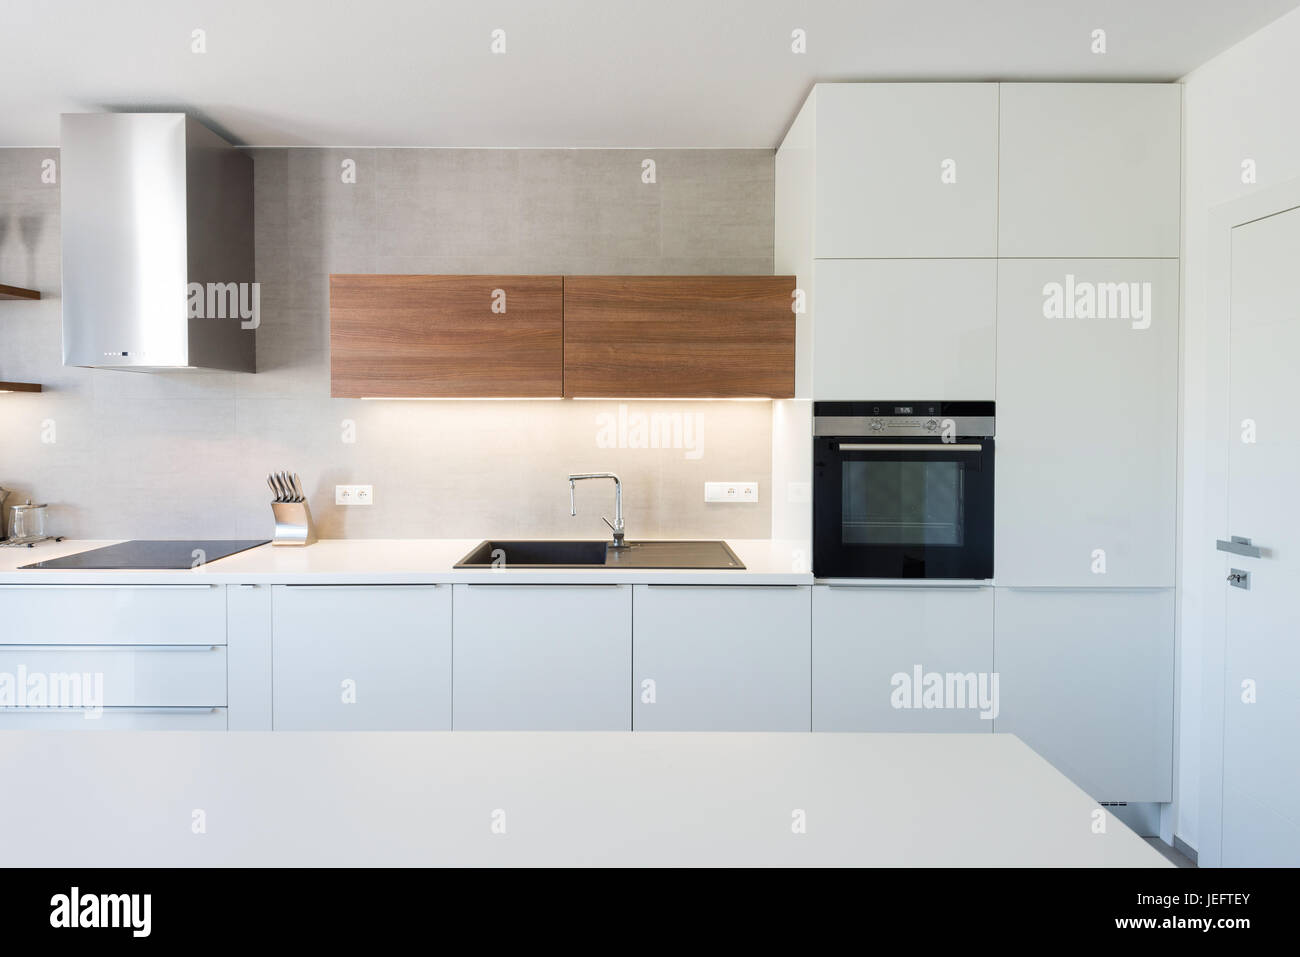 Modern Kitchen Interior With With Built In Appliances Stock Photo